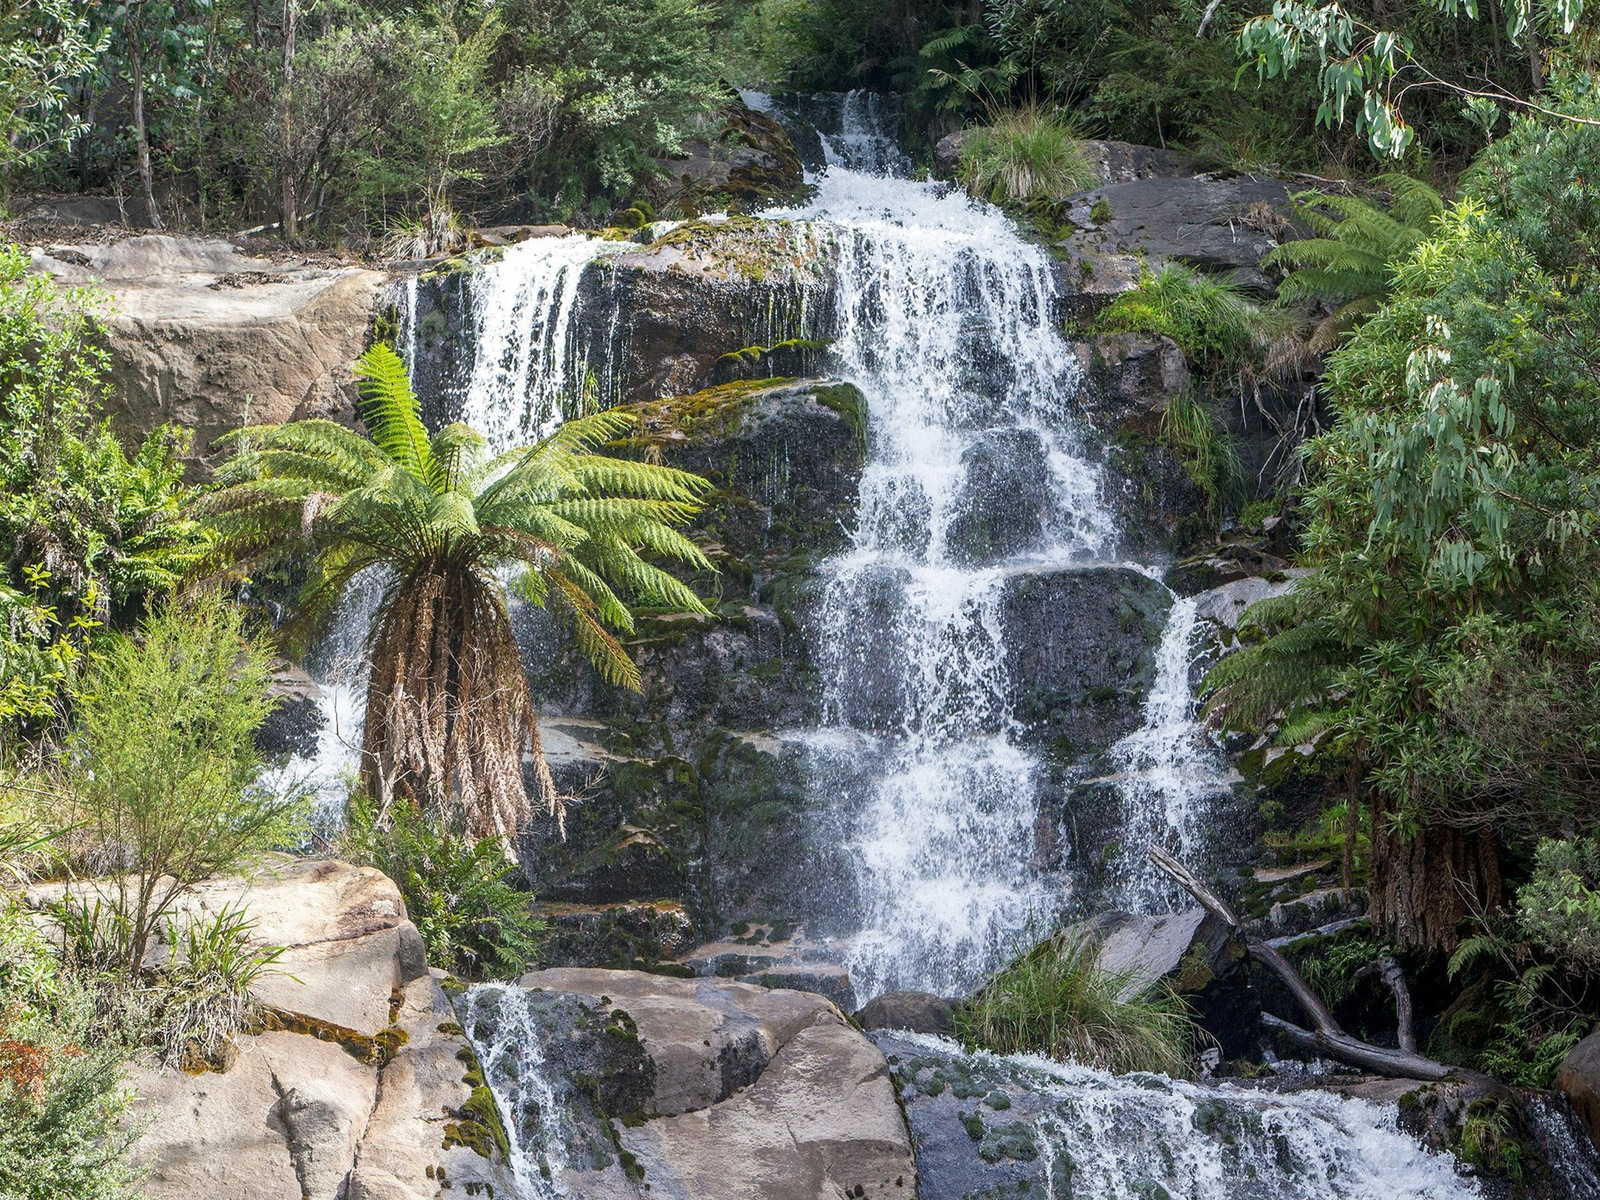 A waterfall with a large  tree fern in front